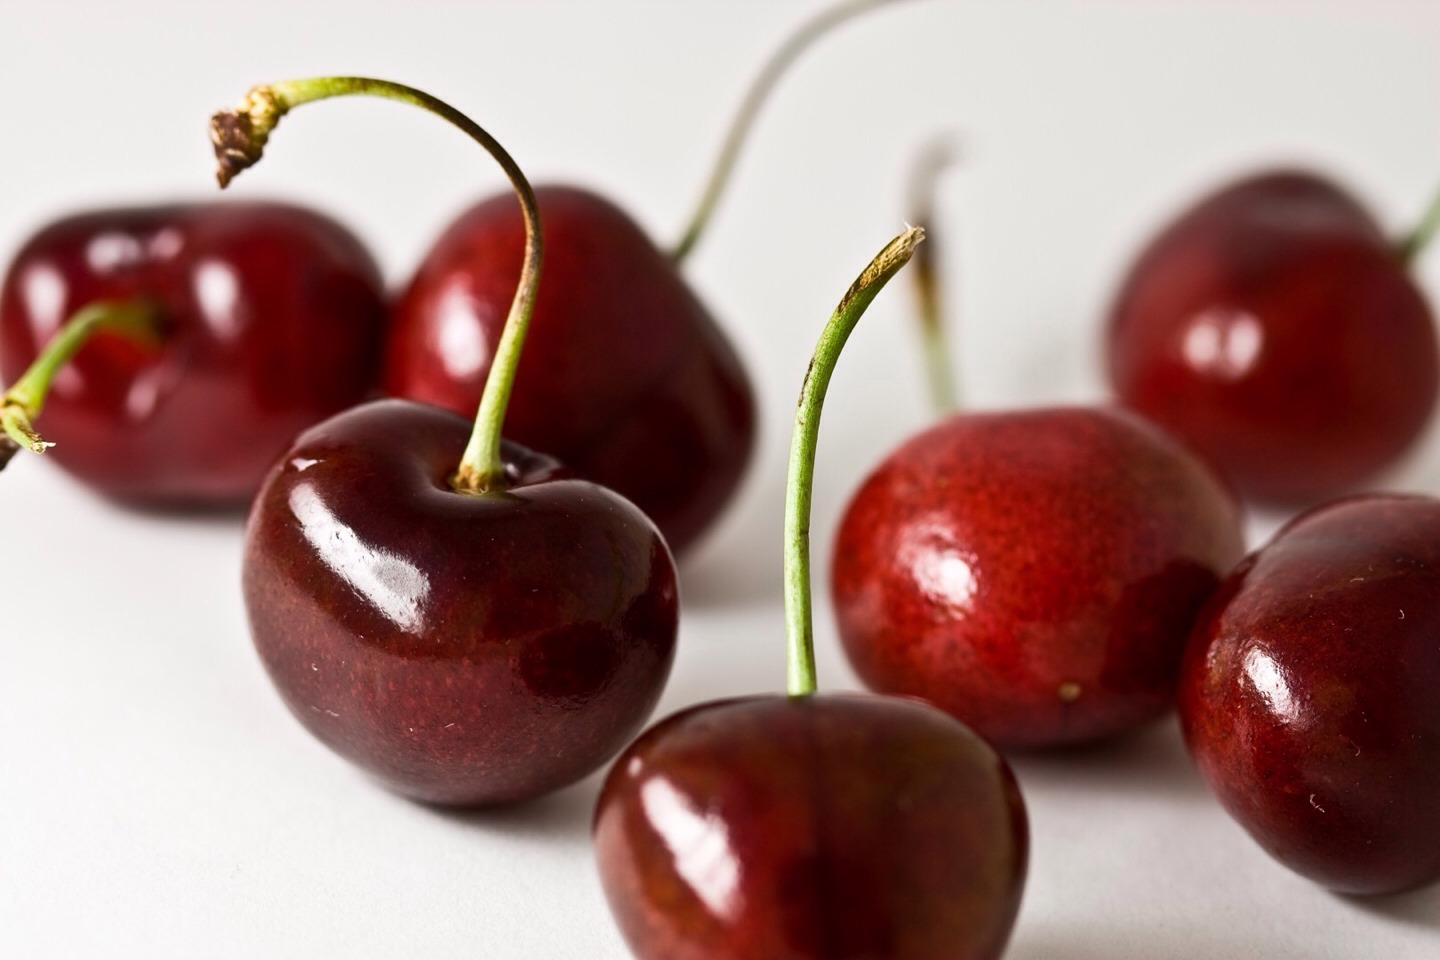 1. Cherries. Fresh and dried cherries are one of the only natural food sources of melatonin, the chemical that controls the body's internal clock to regulate sleep. Researchers who tested tart cherries and found high levels of melatonin recommend eating them an hour before bedtime.